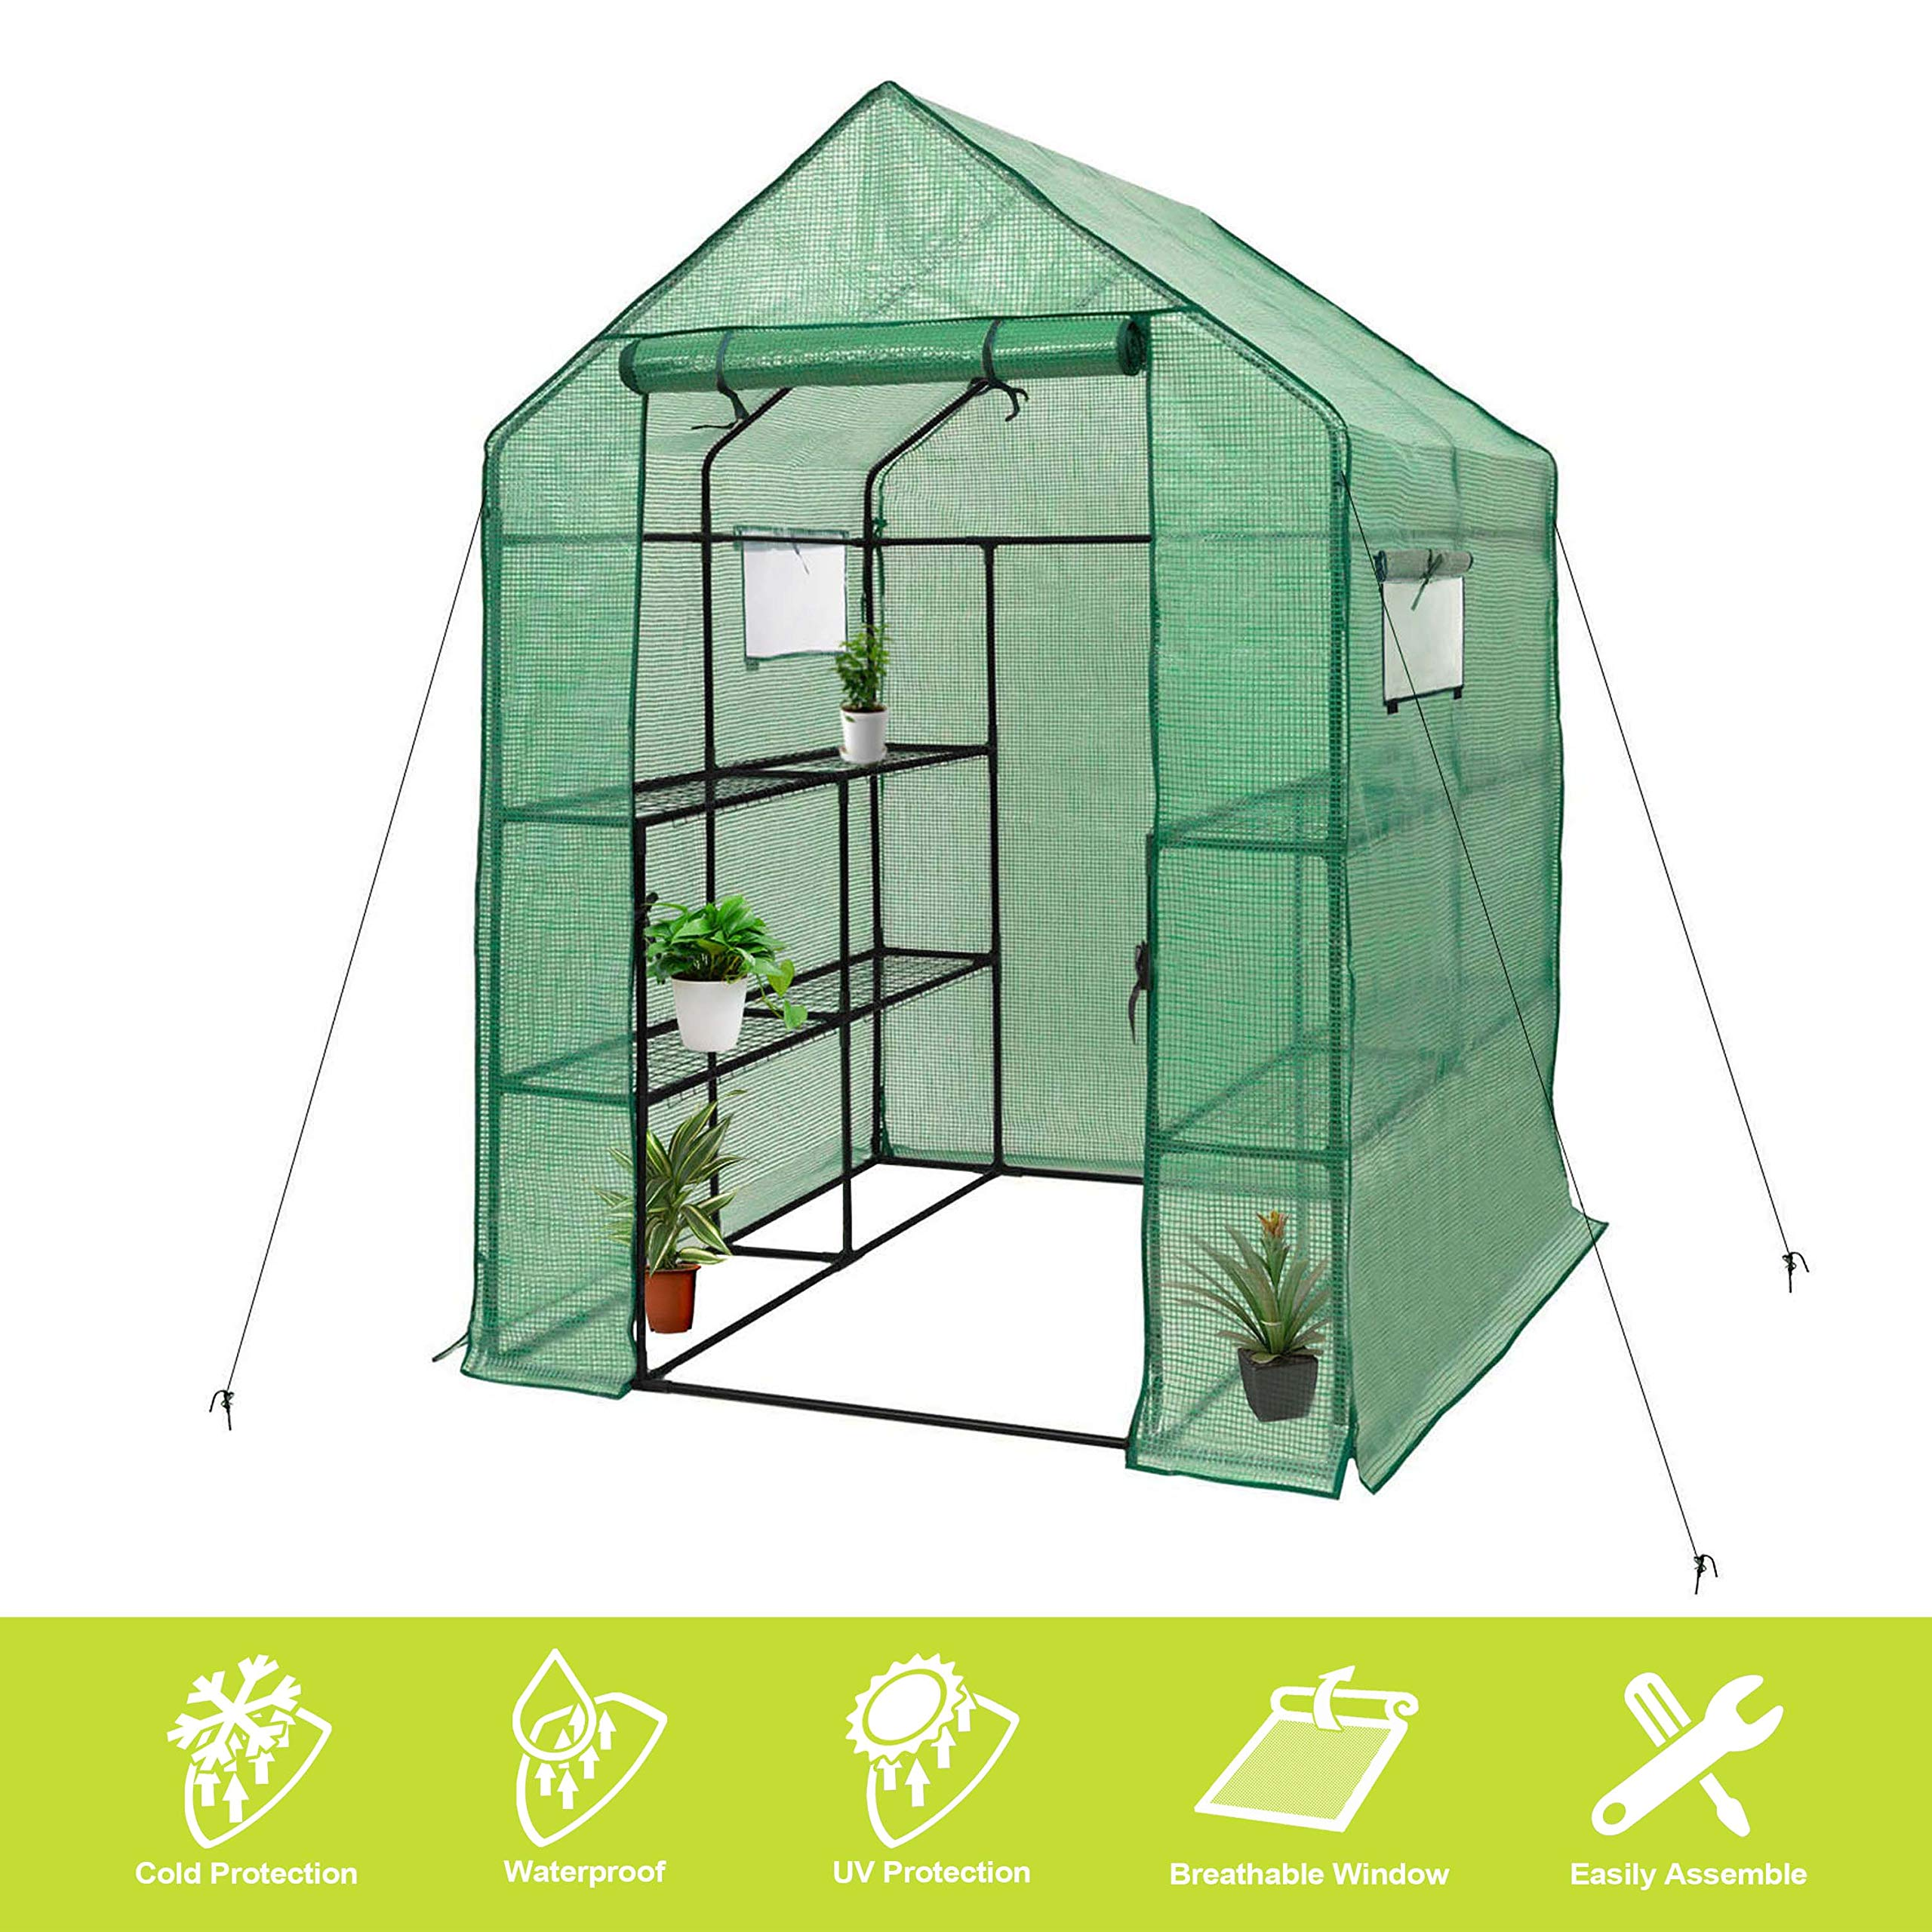 Deluxe Green House 56'' W x 56'' D x 77'' H,Walk in Outdoor Plant Gardening Greenhouse 2 Tiers 8 Shelves - Window and Anchors Include!